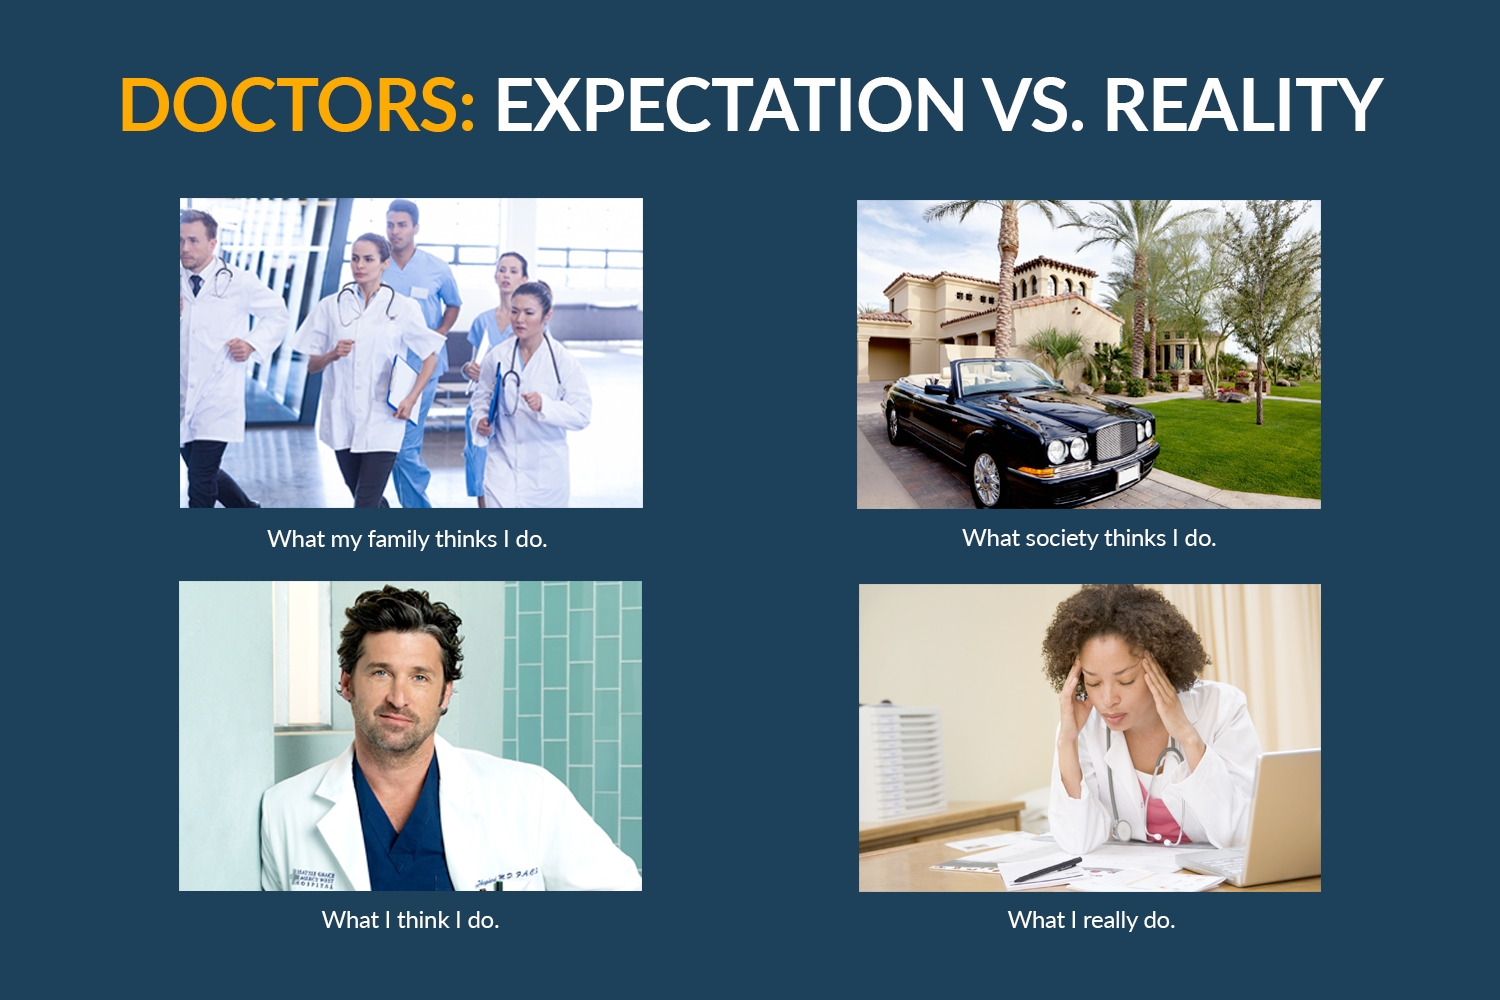 Becoming A Doctor: Expectation vs. Reality